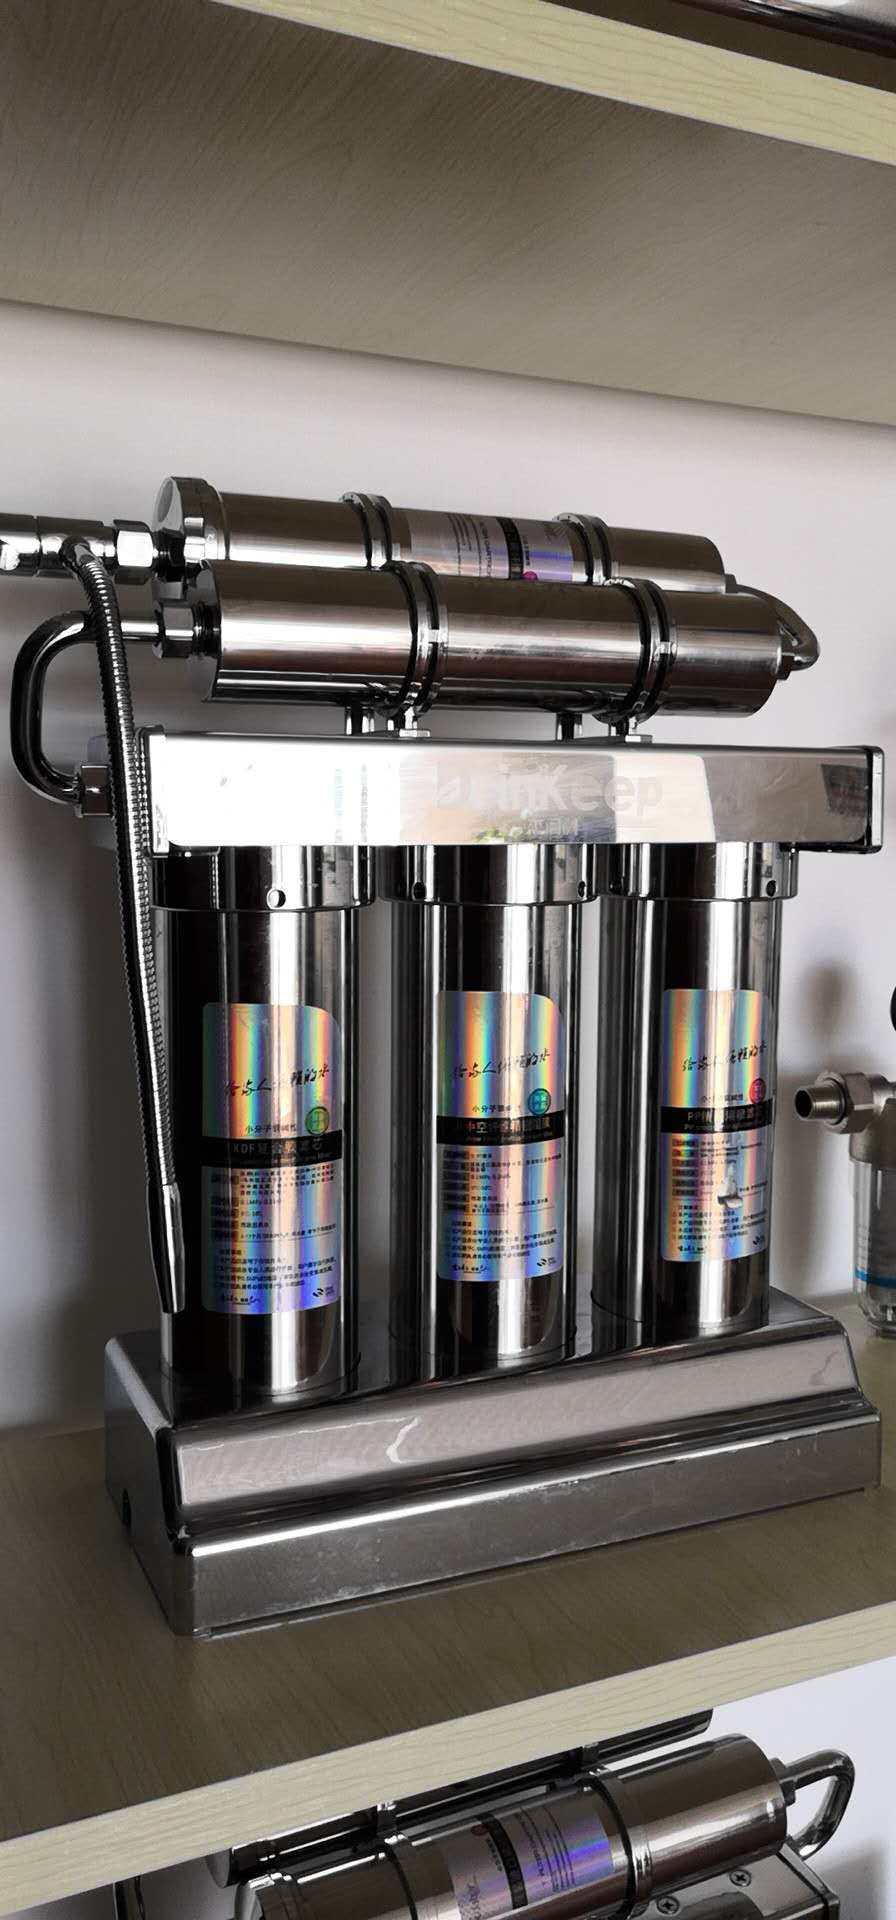 High Flow Stainless Steel Ultrafiltration Purifier